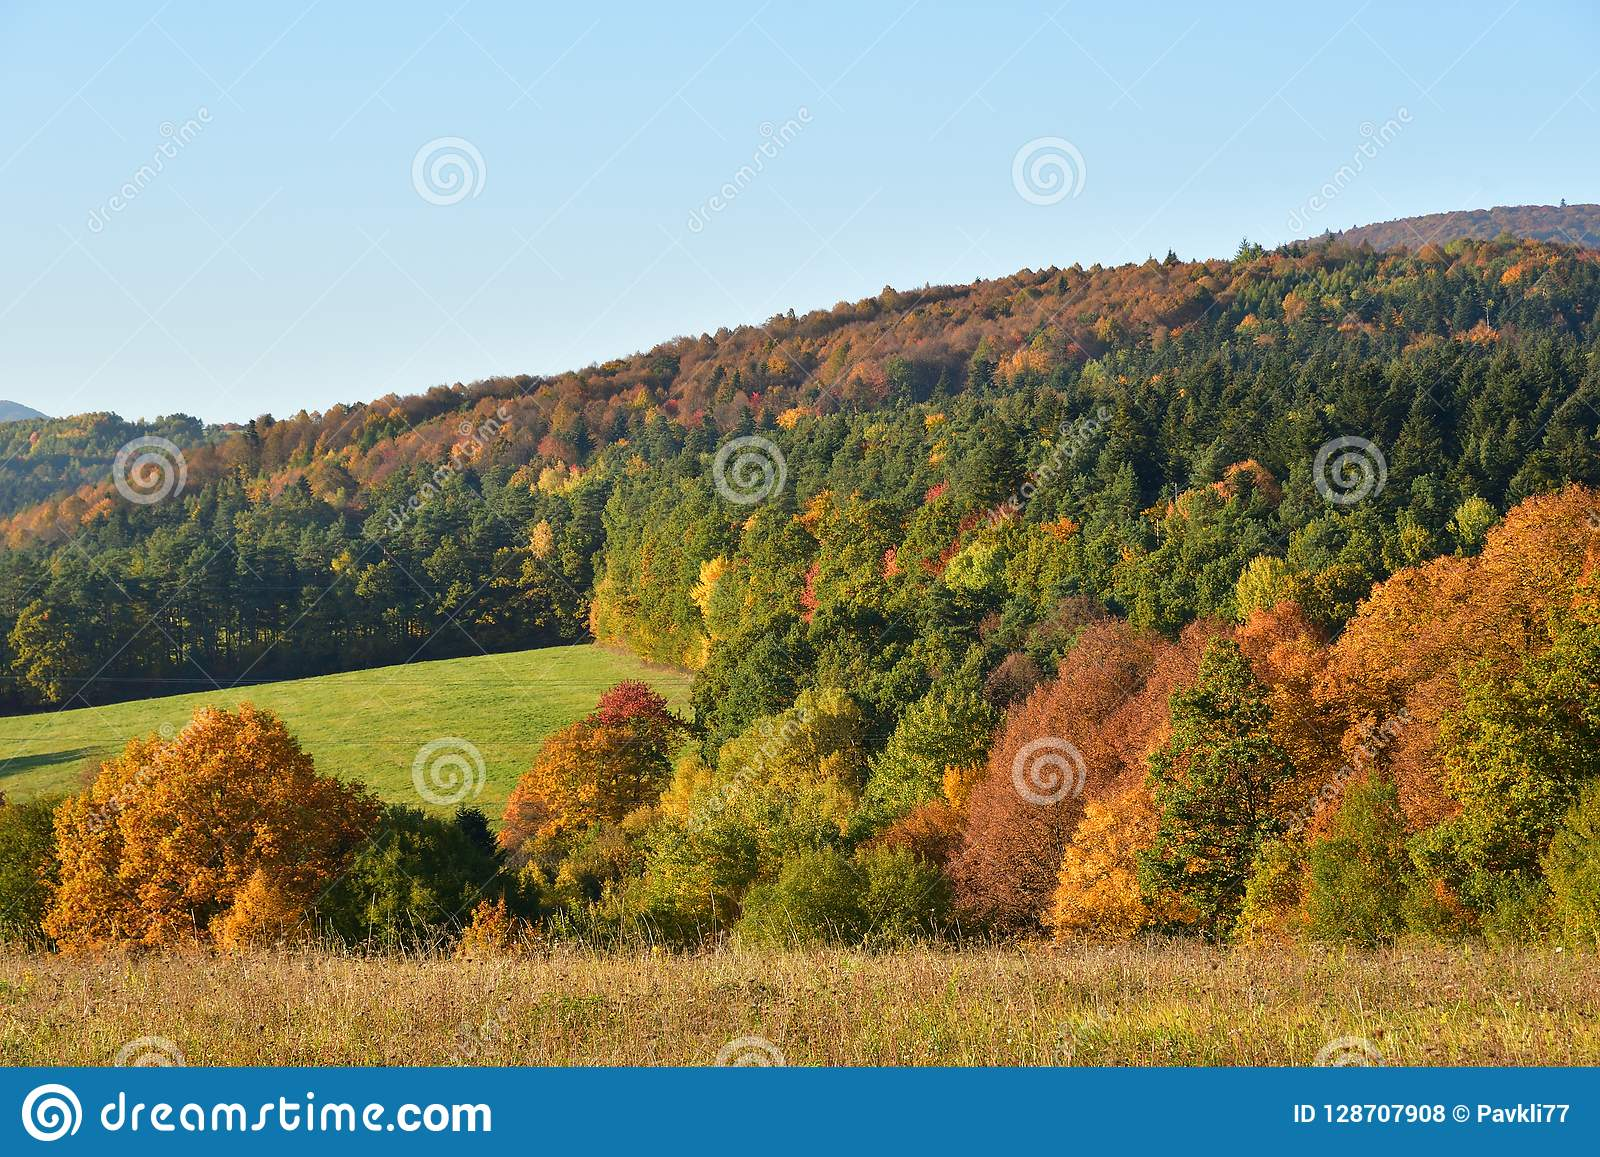 nature trees in autumn colored in color landscapes stock photo